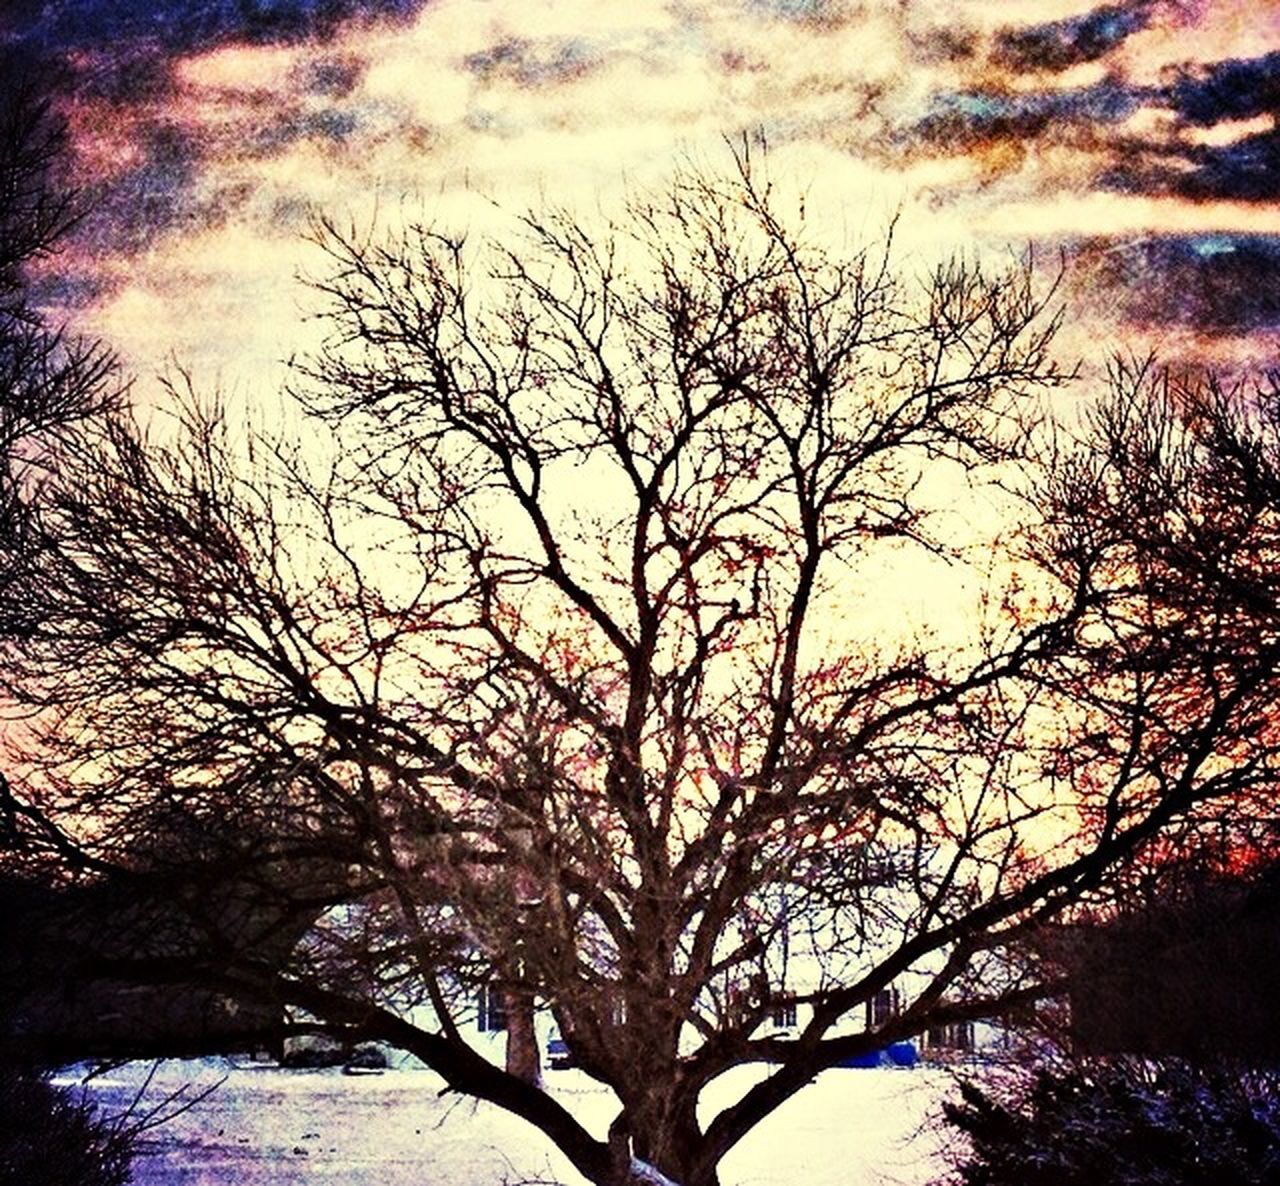 tree, branch, low angle view, nature, bare tree, sky, beauty in nature, outdoors, scenics, no people, silhouette, growth, day